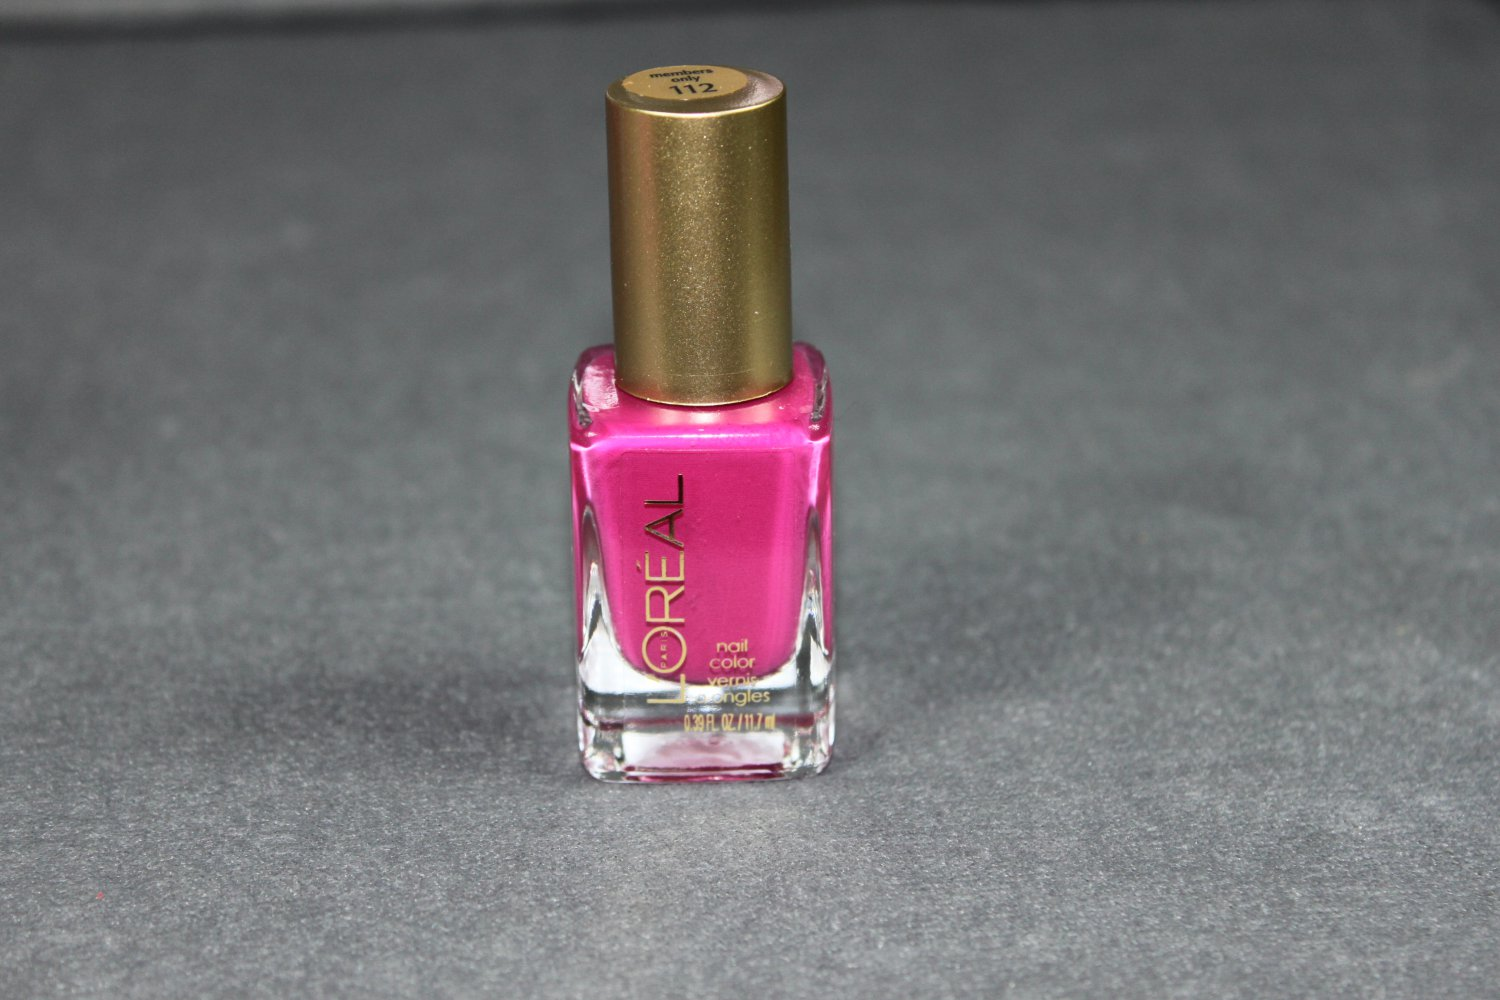 Loreal MEMBERS ONLY Nail Polish #112